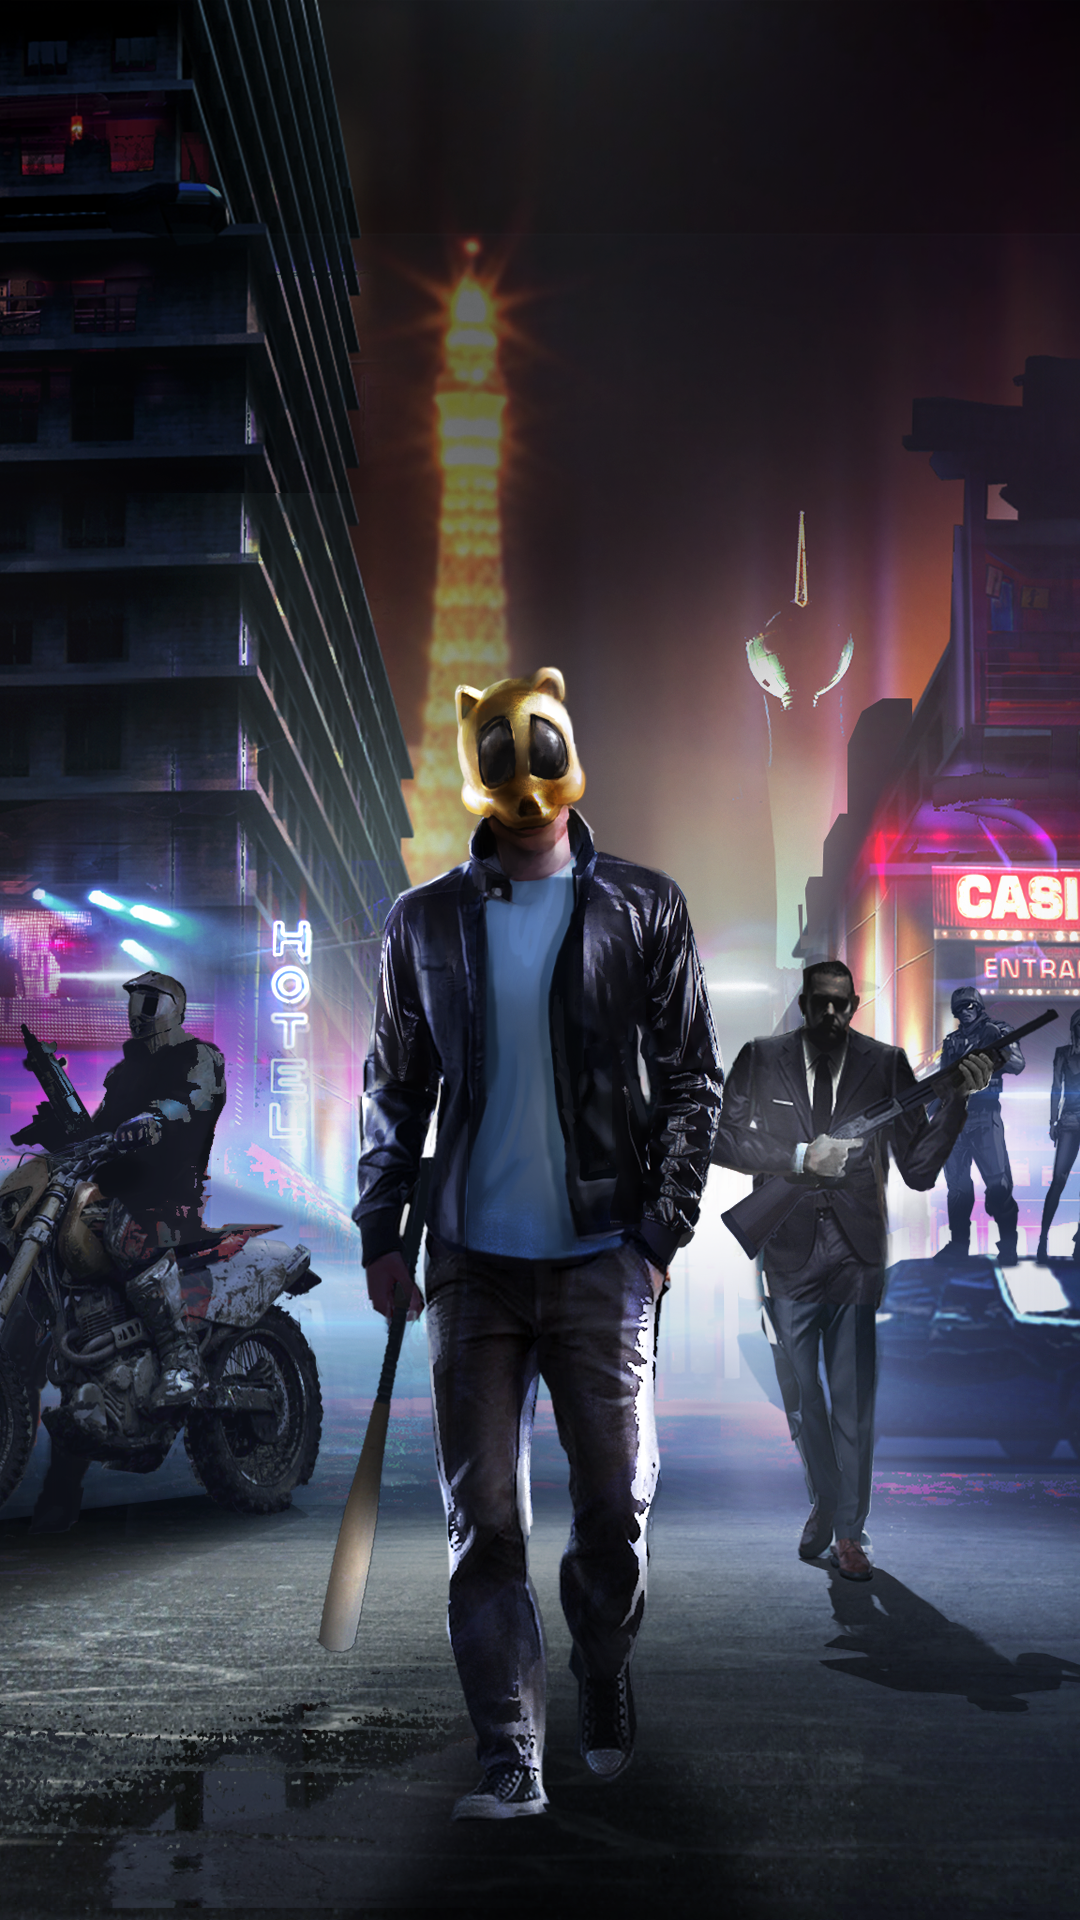 Amazon.com: Gangstar Vegas: Appstore for Android